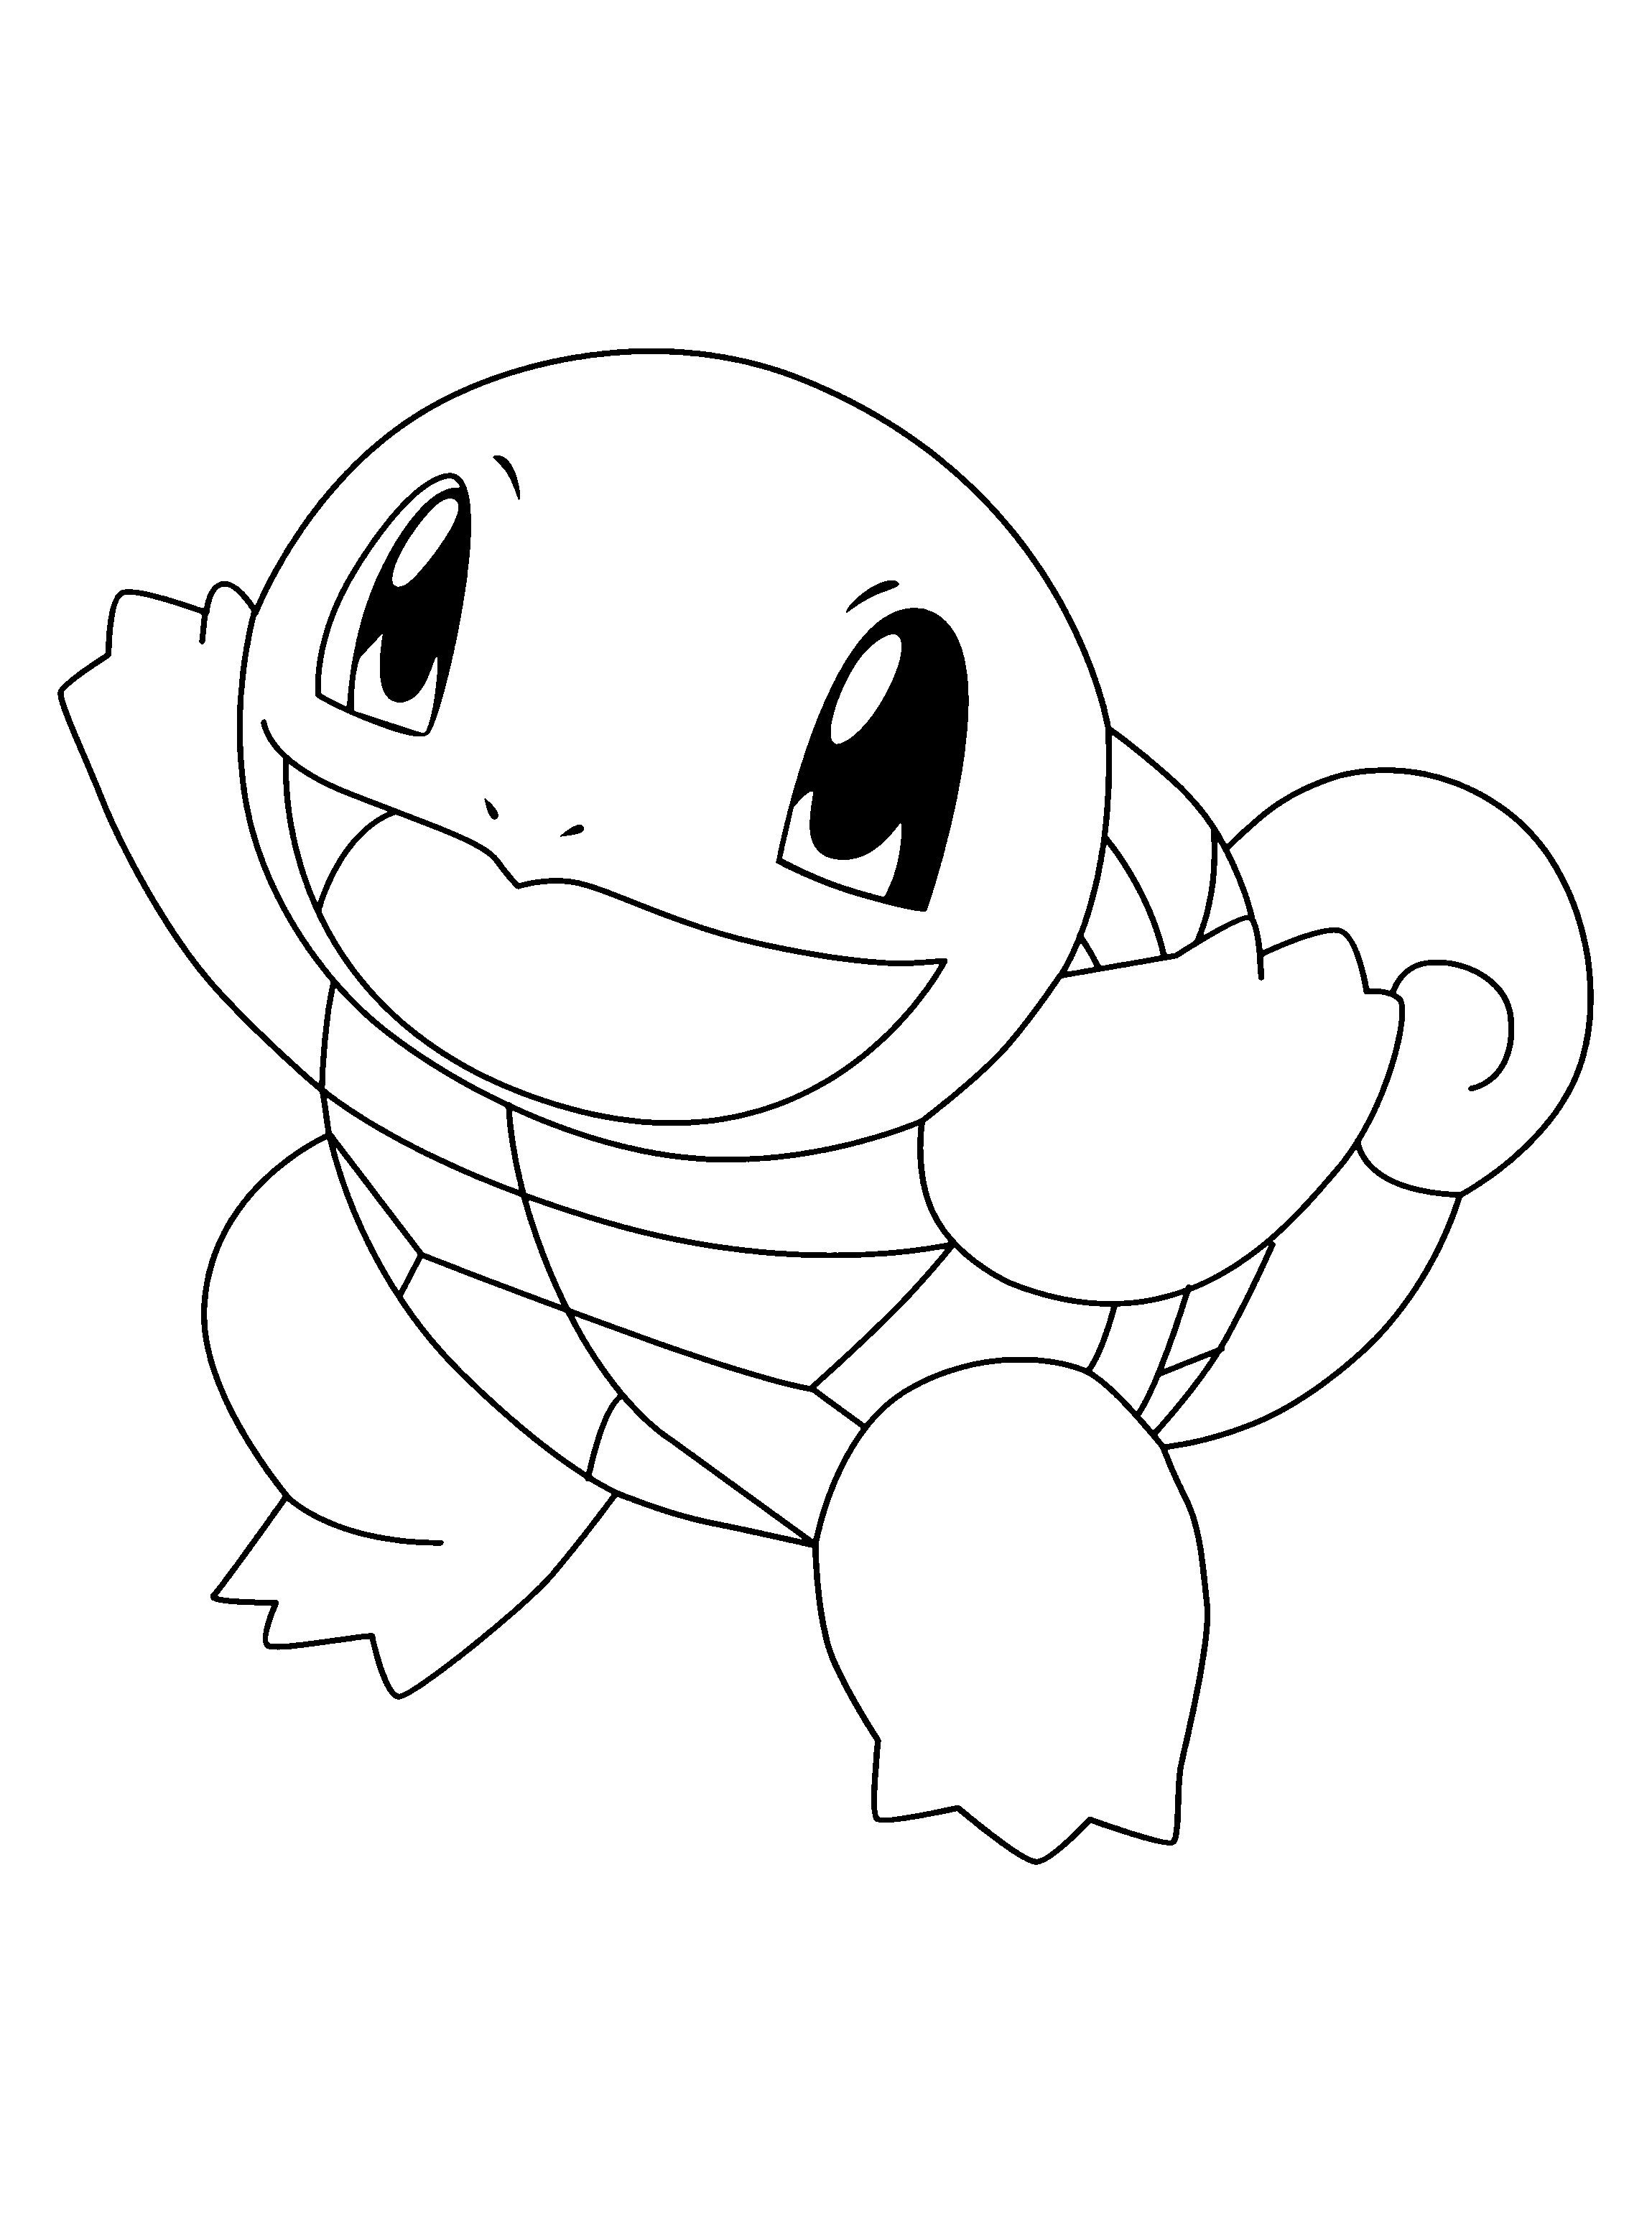 Malvorlagen Squirtle Giap Pikachu Coloring Page Pokemon Coloring Sheets Pokemon Coloring Pages